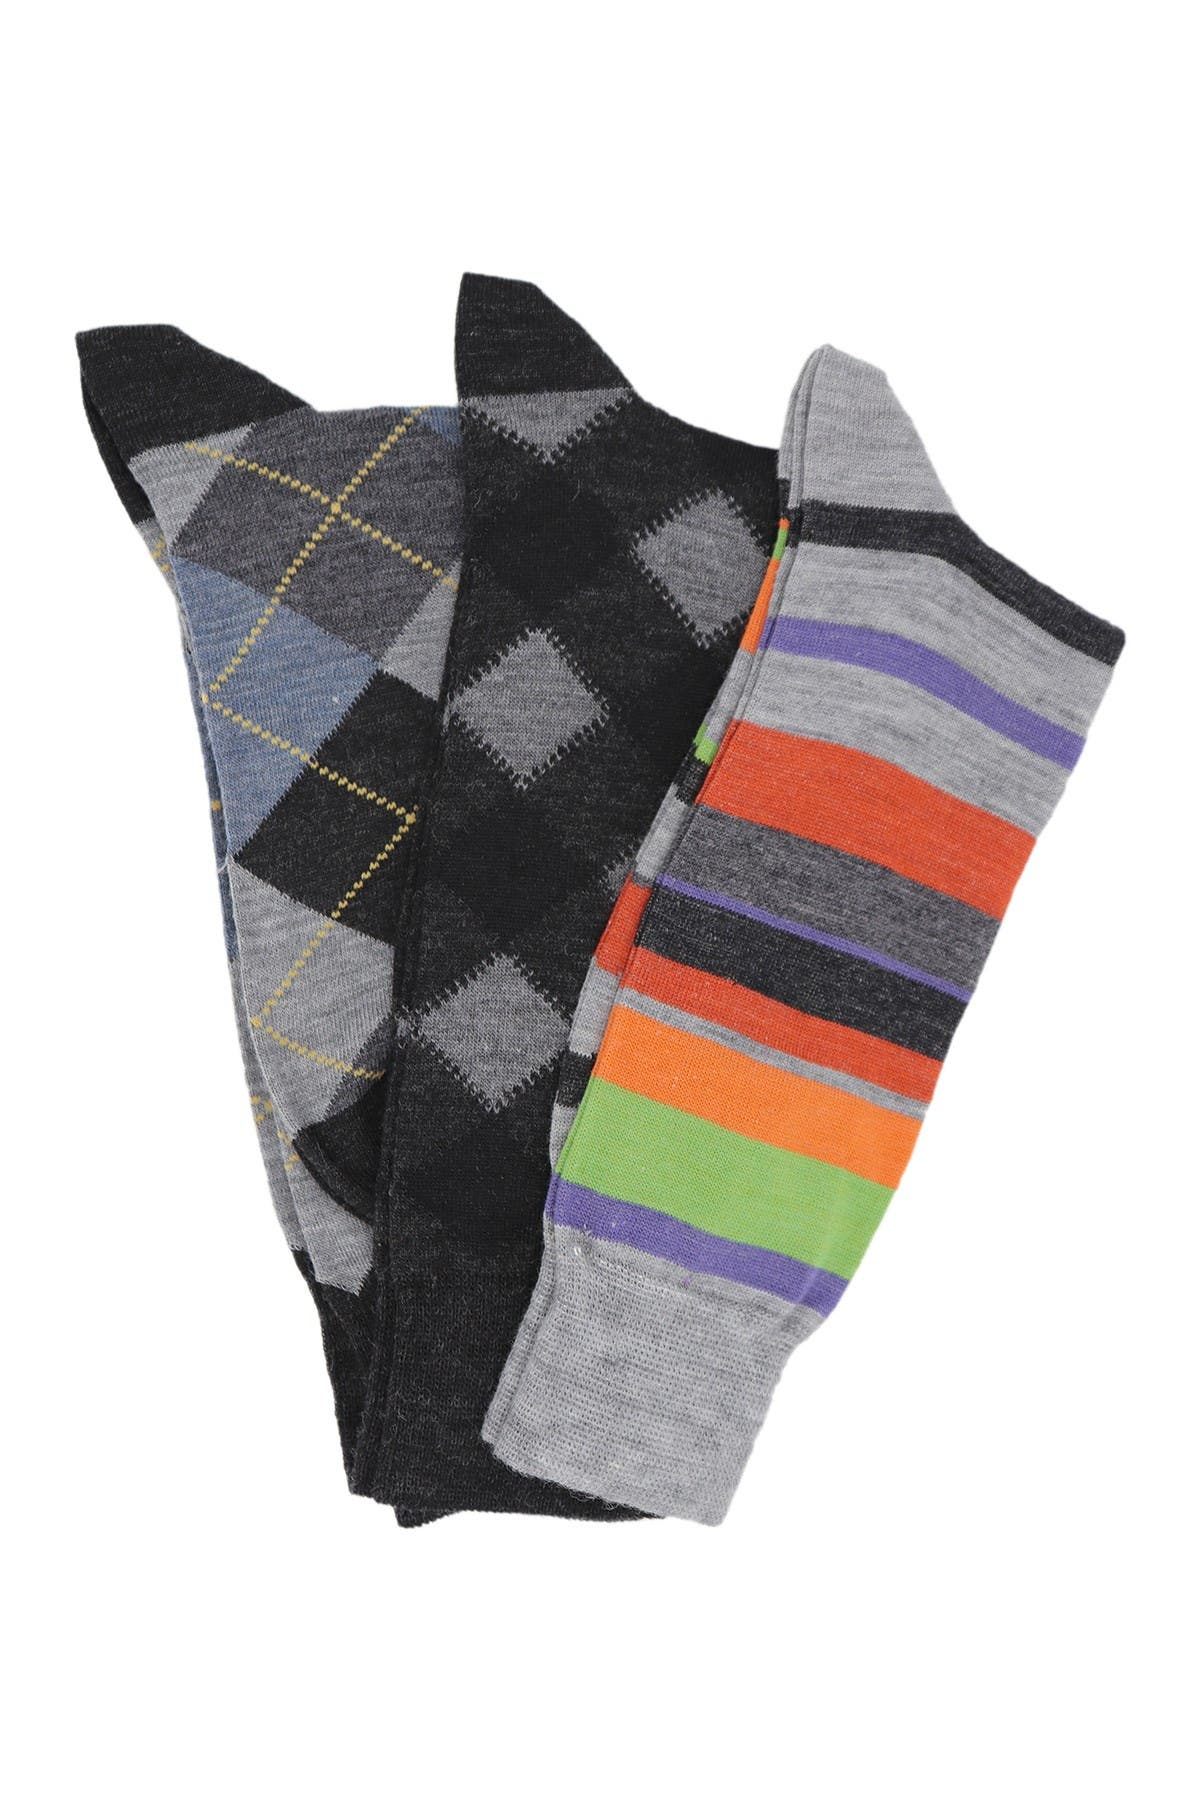 Image of Lorenzo Uomo Italian Merino Wool Crew Socks - Pack of 3